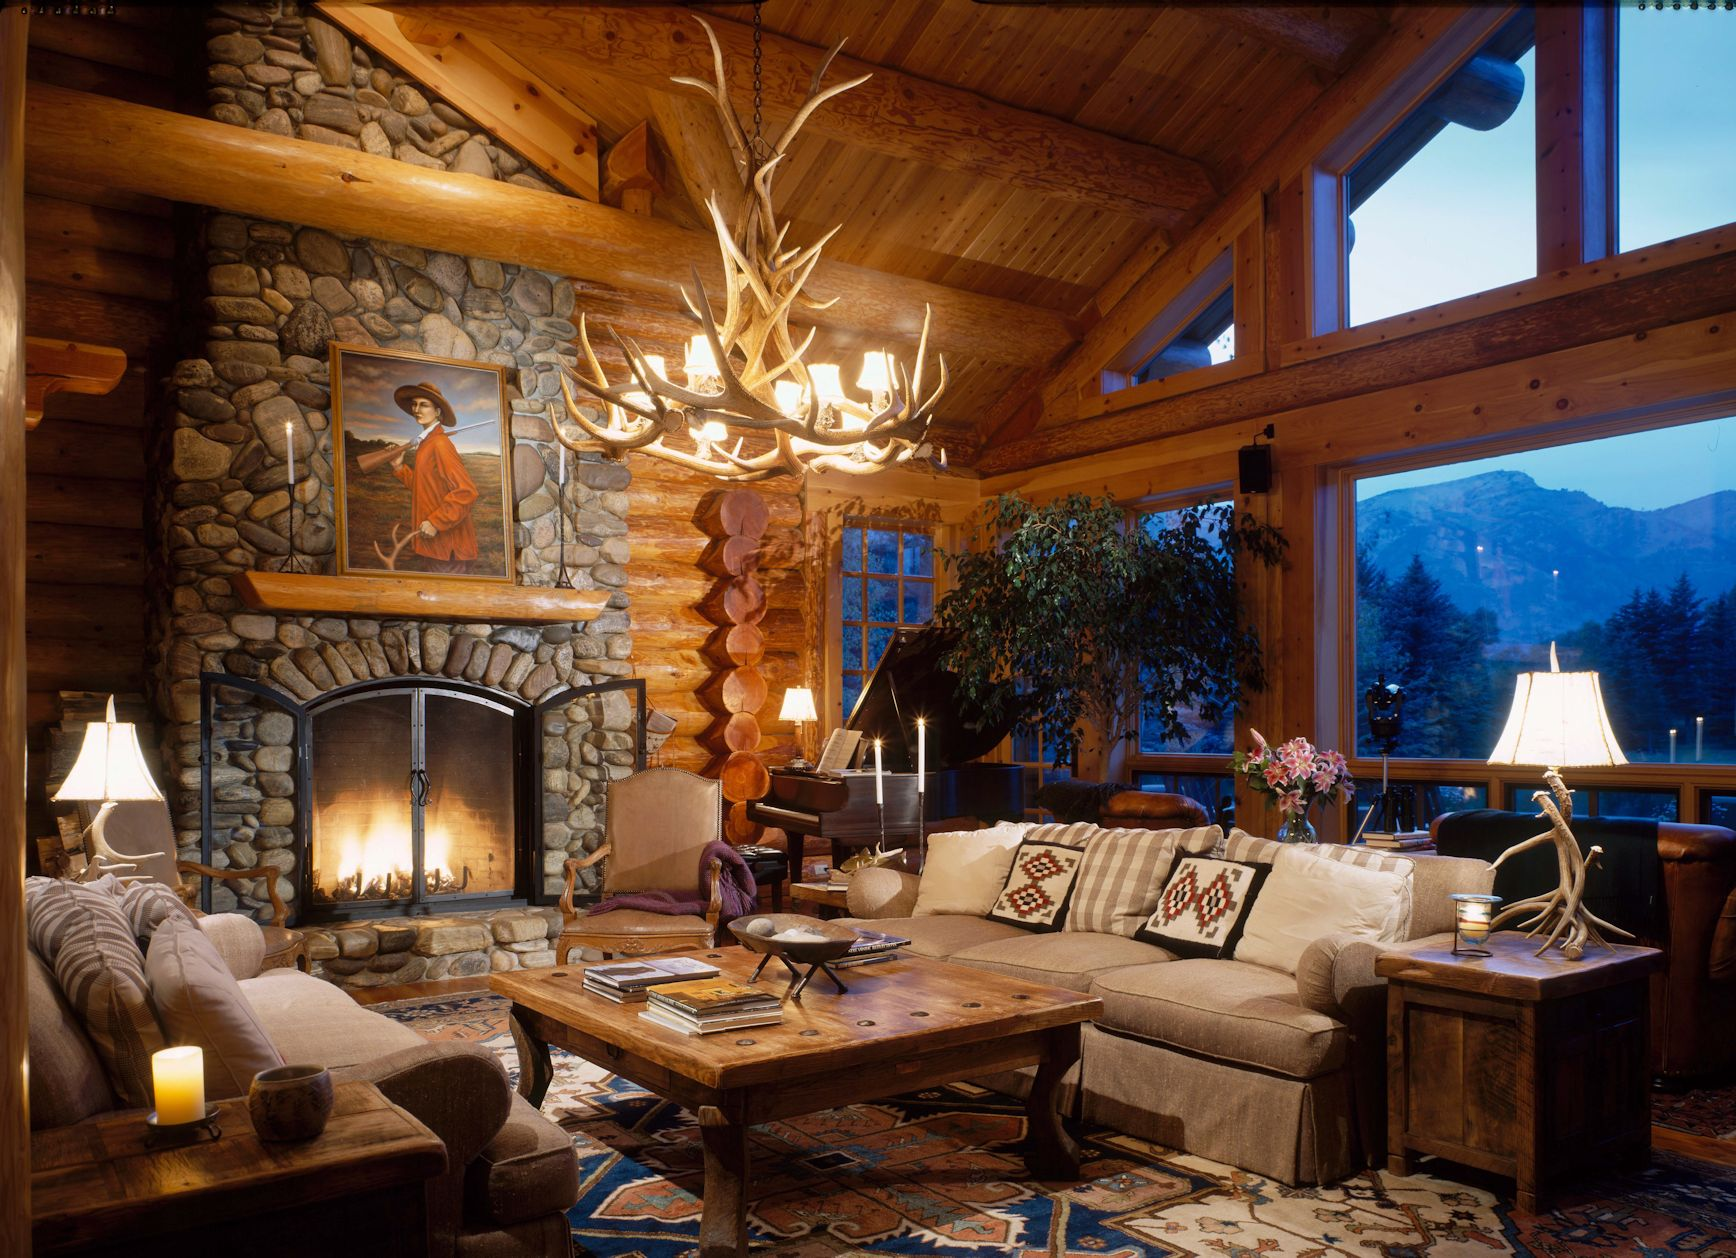 Log home photo gallery north american log crafters canada usa - Home and living ...